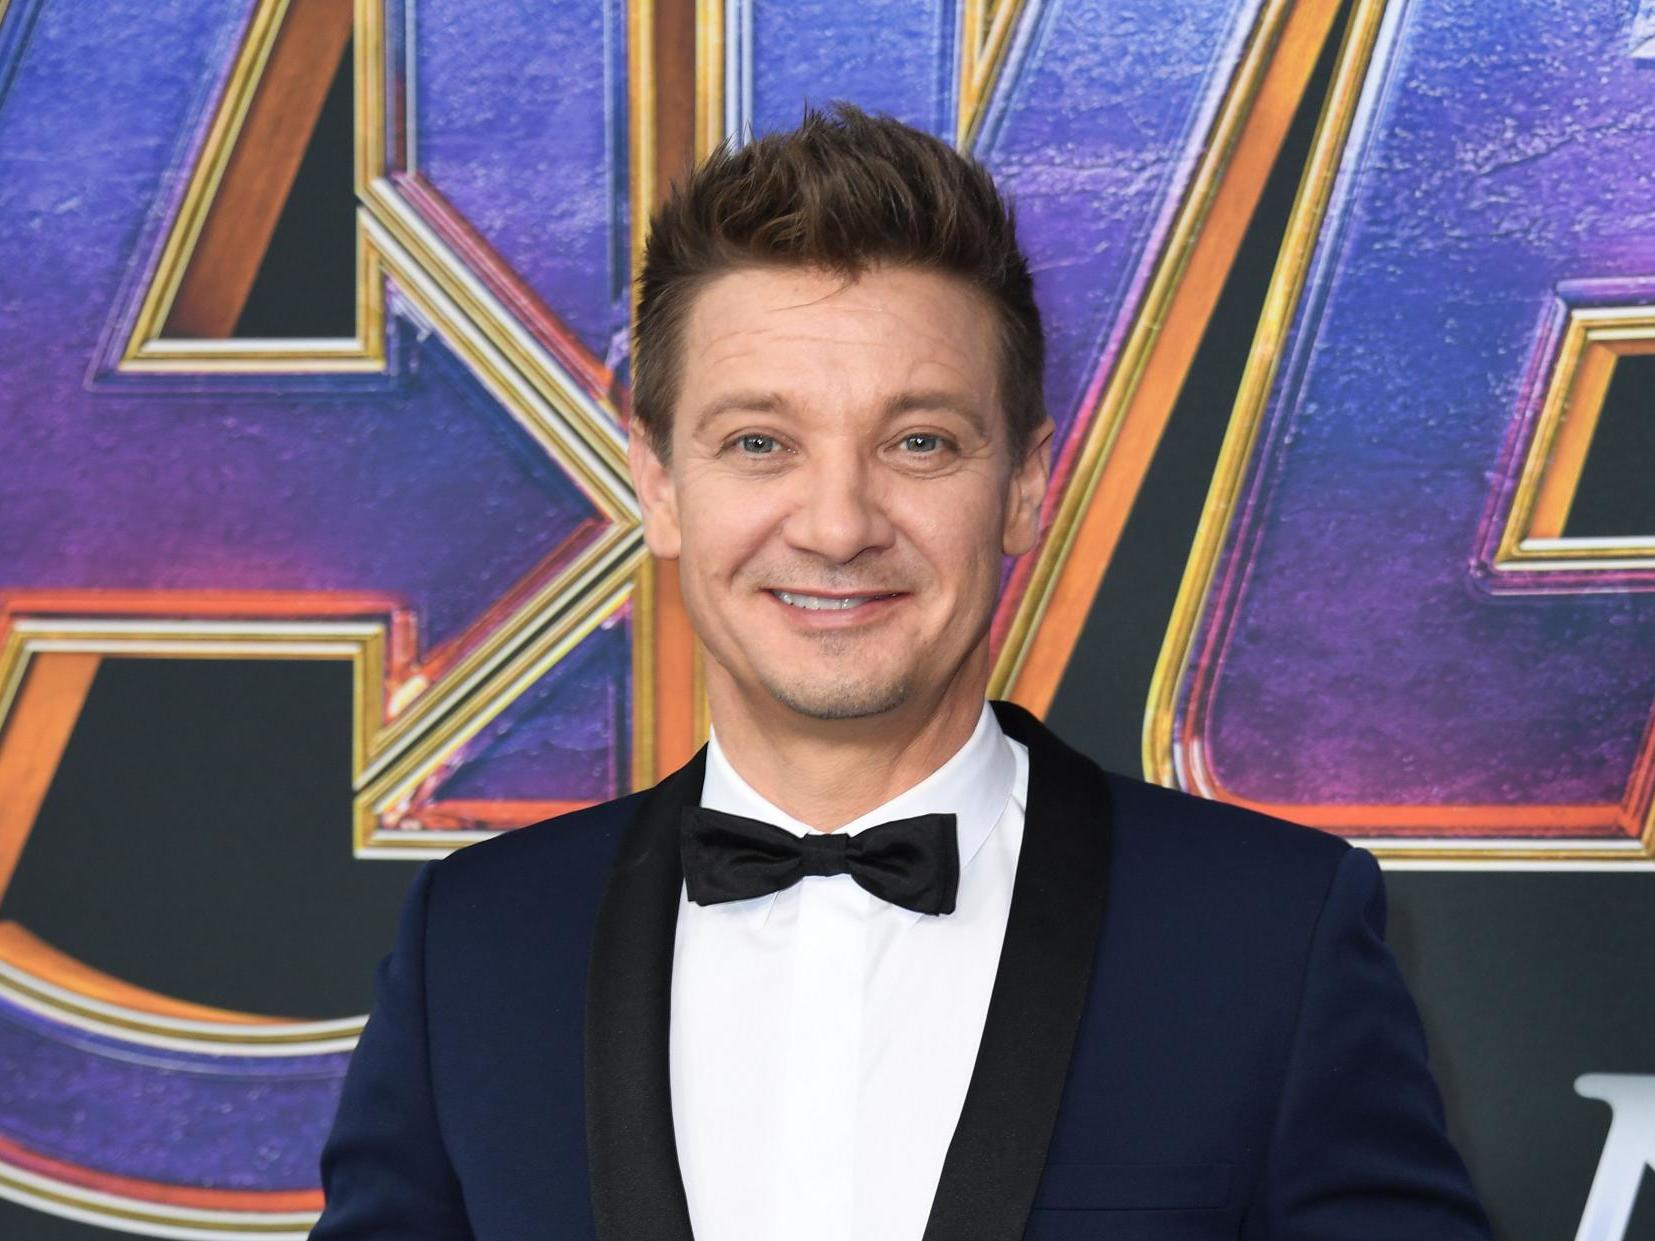 Jeremy Renner shuts down app after trolls impersonate Jeffrey Epstein, OJ Simpson and Jar Jar Binks